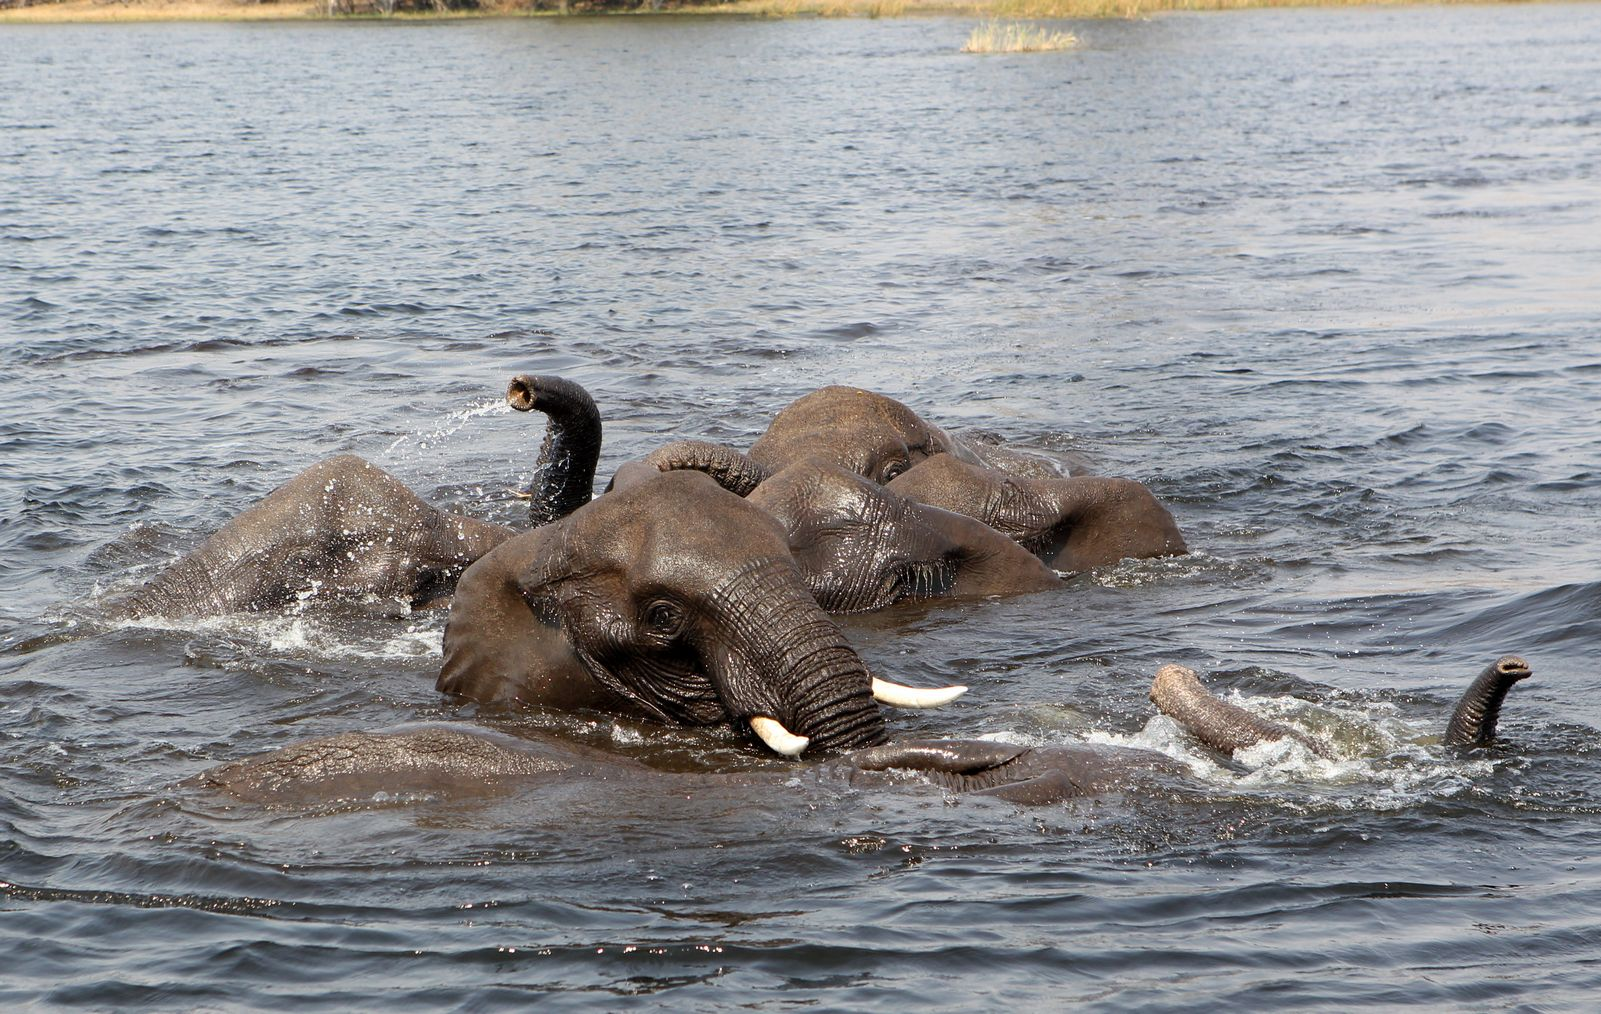 Elephants in the lagoon 1